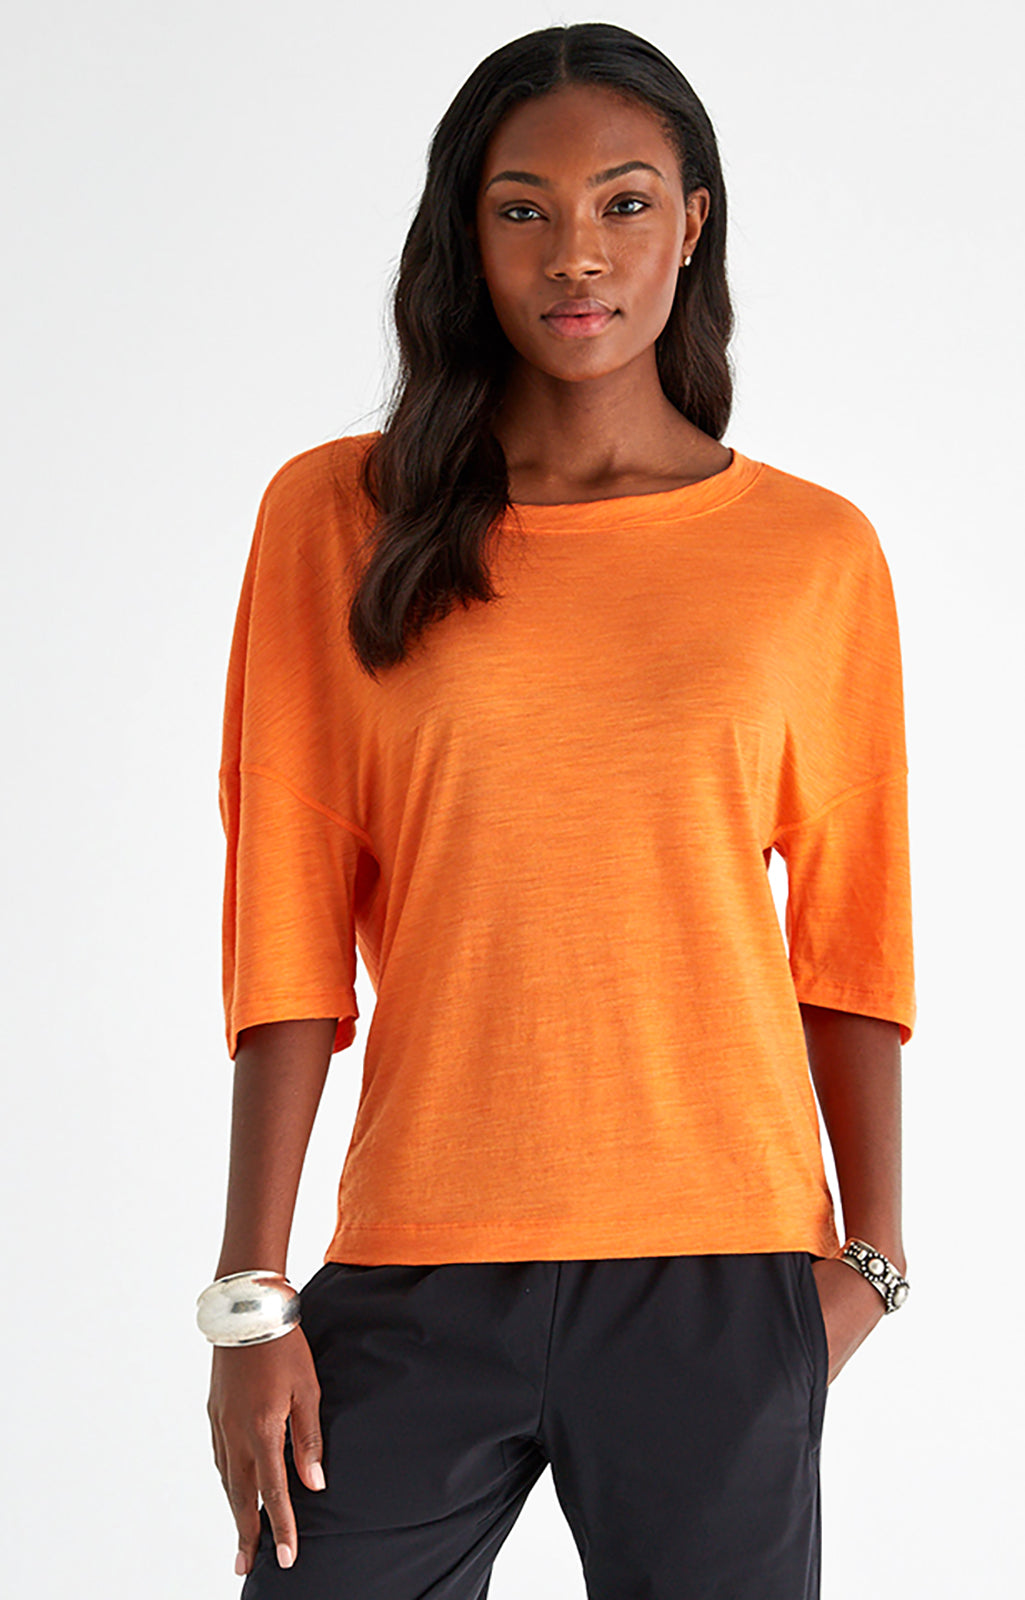 Integrity - Luxe Slouchy Merino Travel Tee in Orange